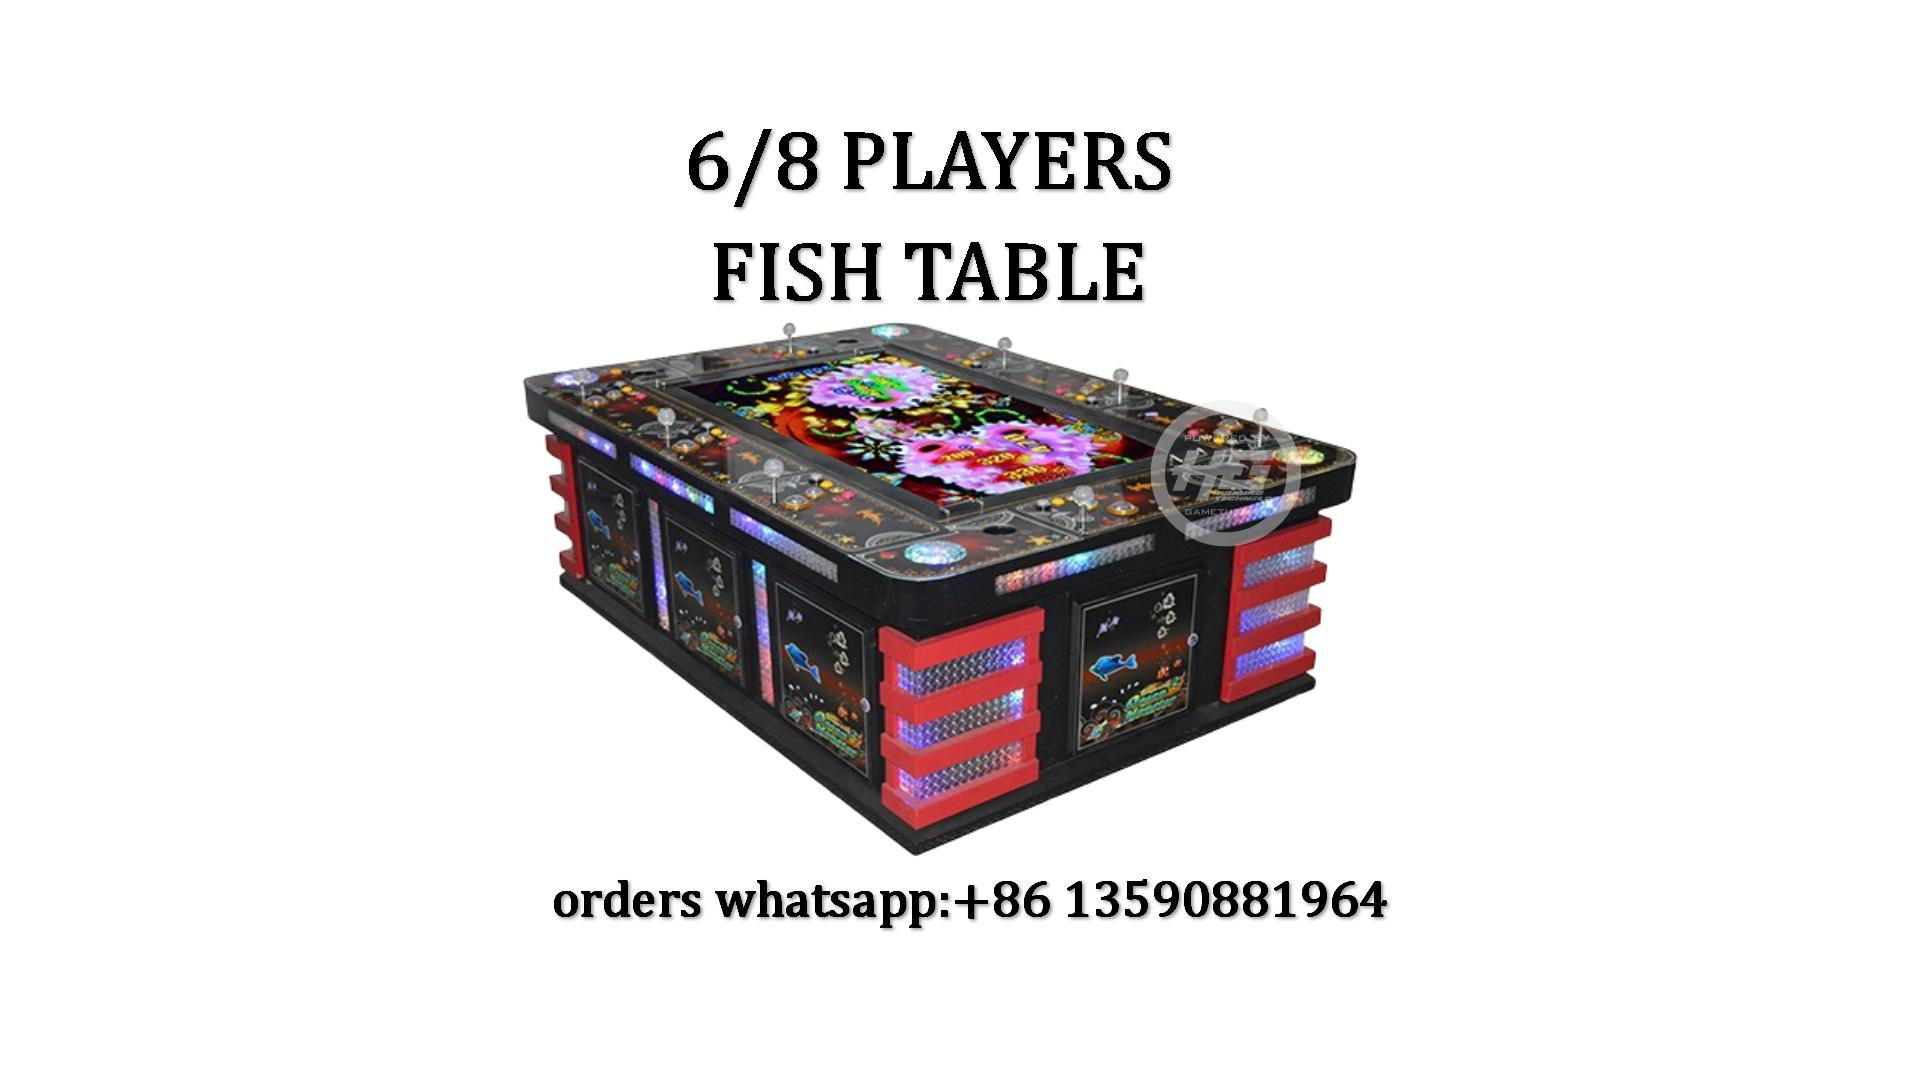 Luxury 6/8 Players Fishing Game Machine,Fish Table Game,Ocean King 3 Plus Fishing Game For Sale